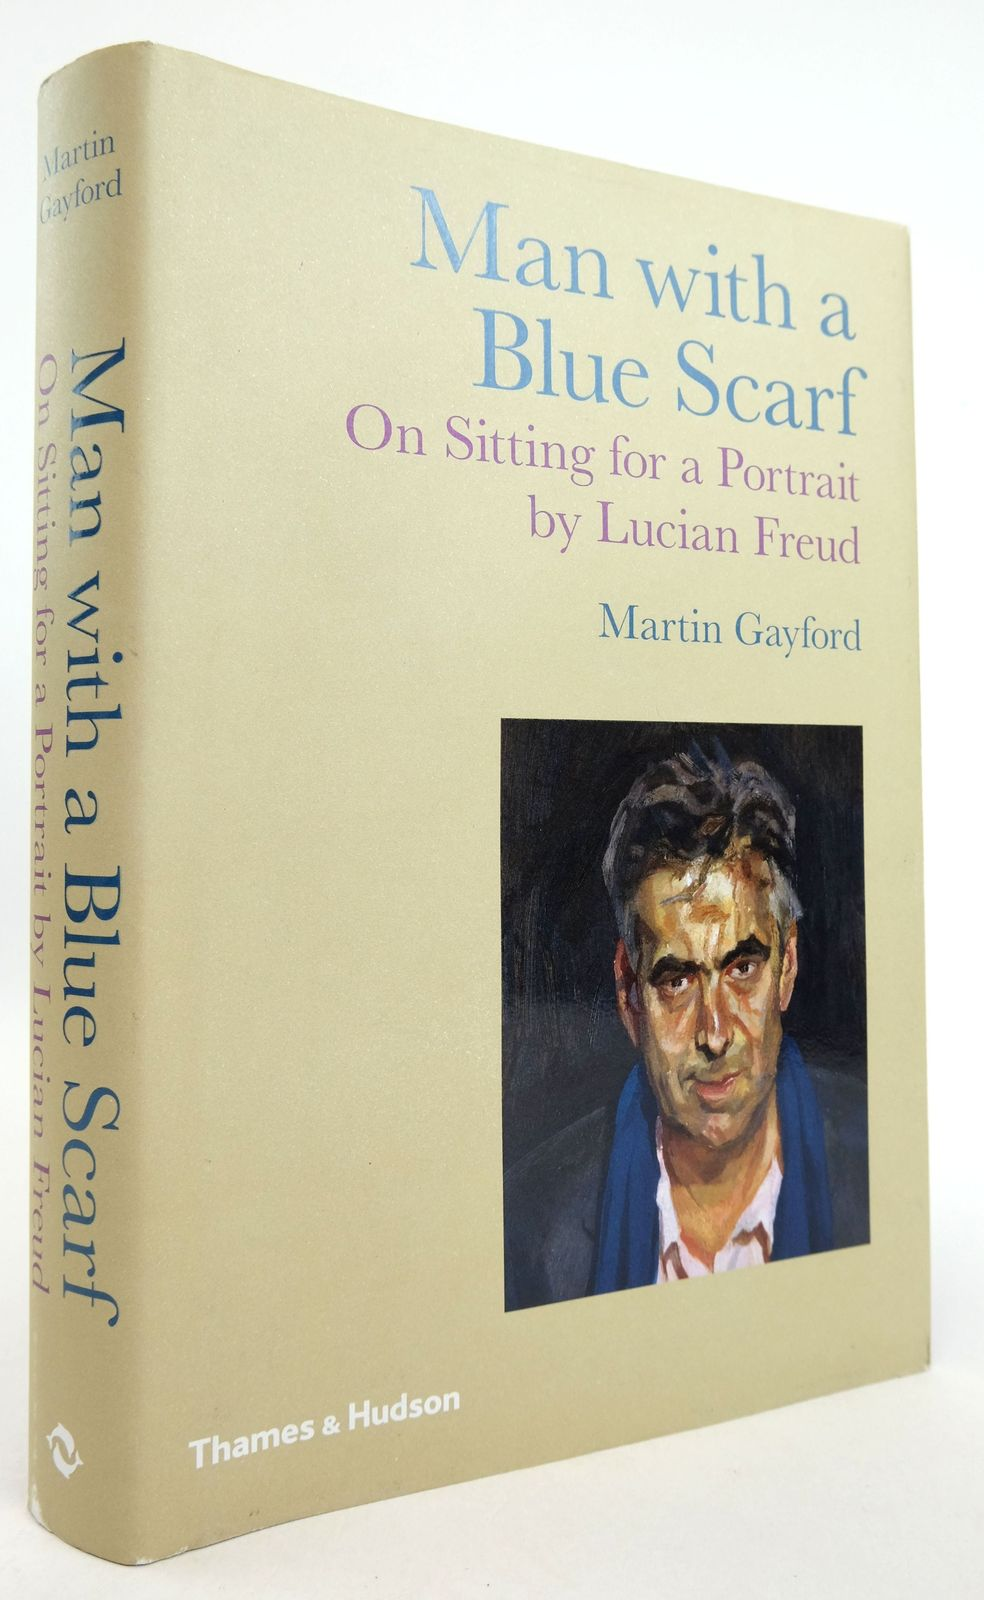 Photo of MAN WITH A BLUE SCARF: ON SITTING FOR A PORTRAIT BY LUCIAN FREUD- Stock Number: 1819311